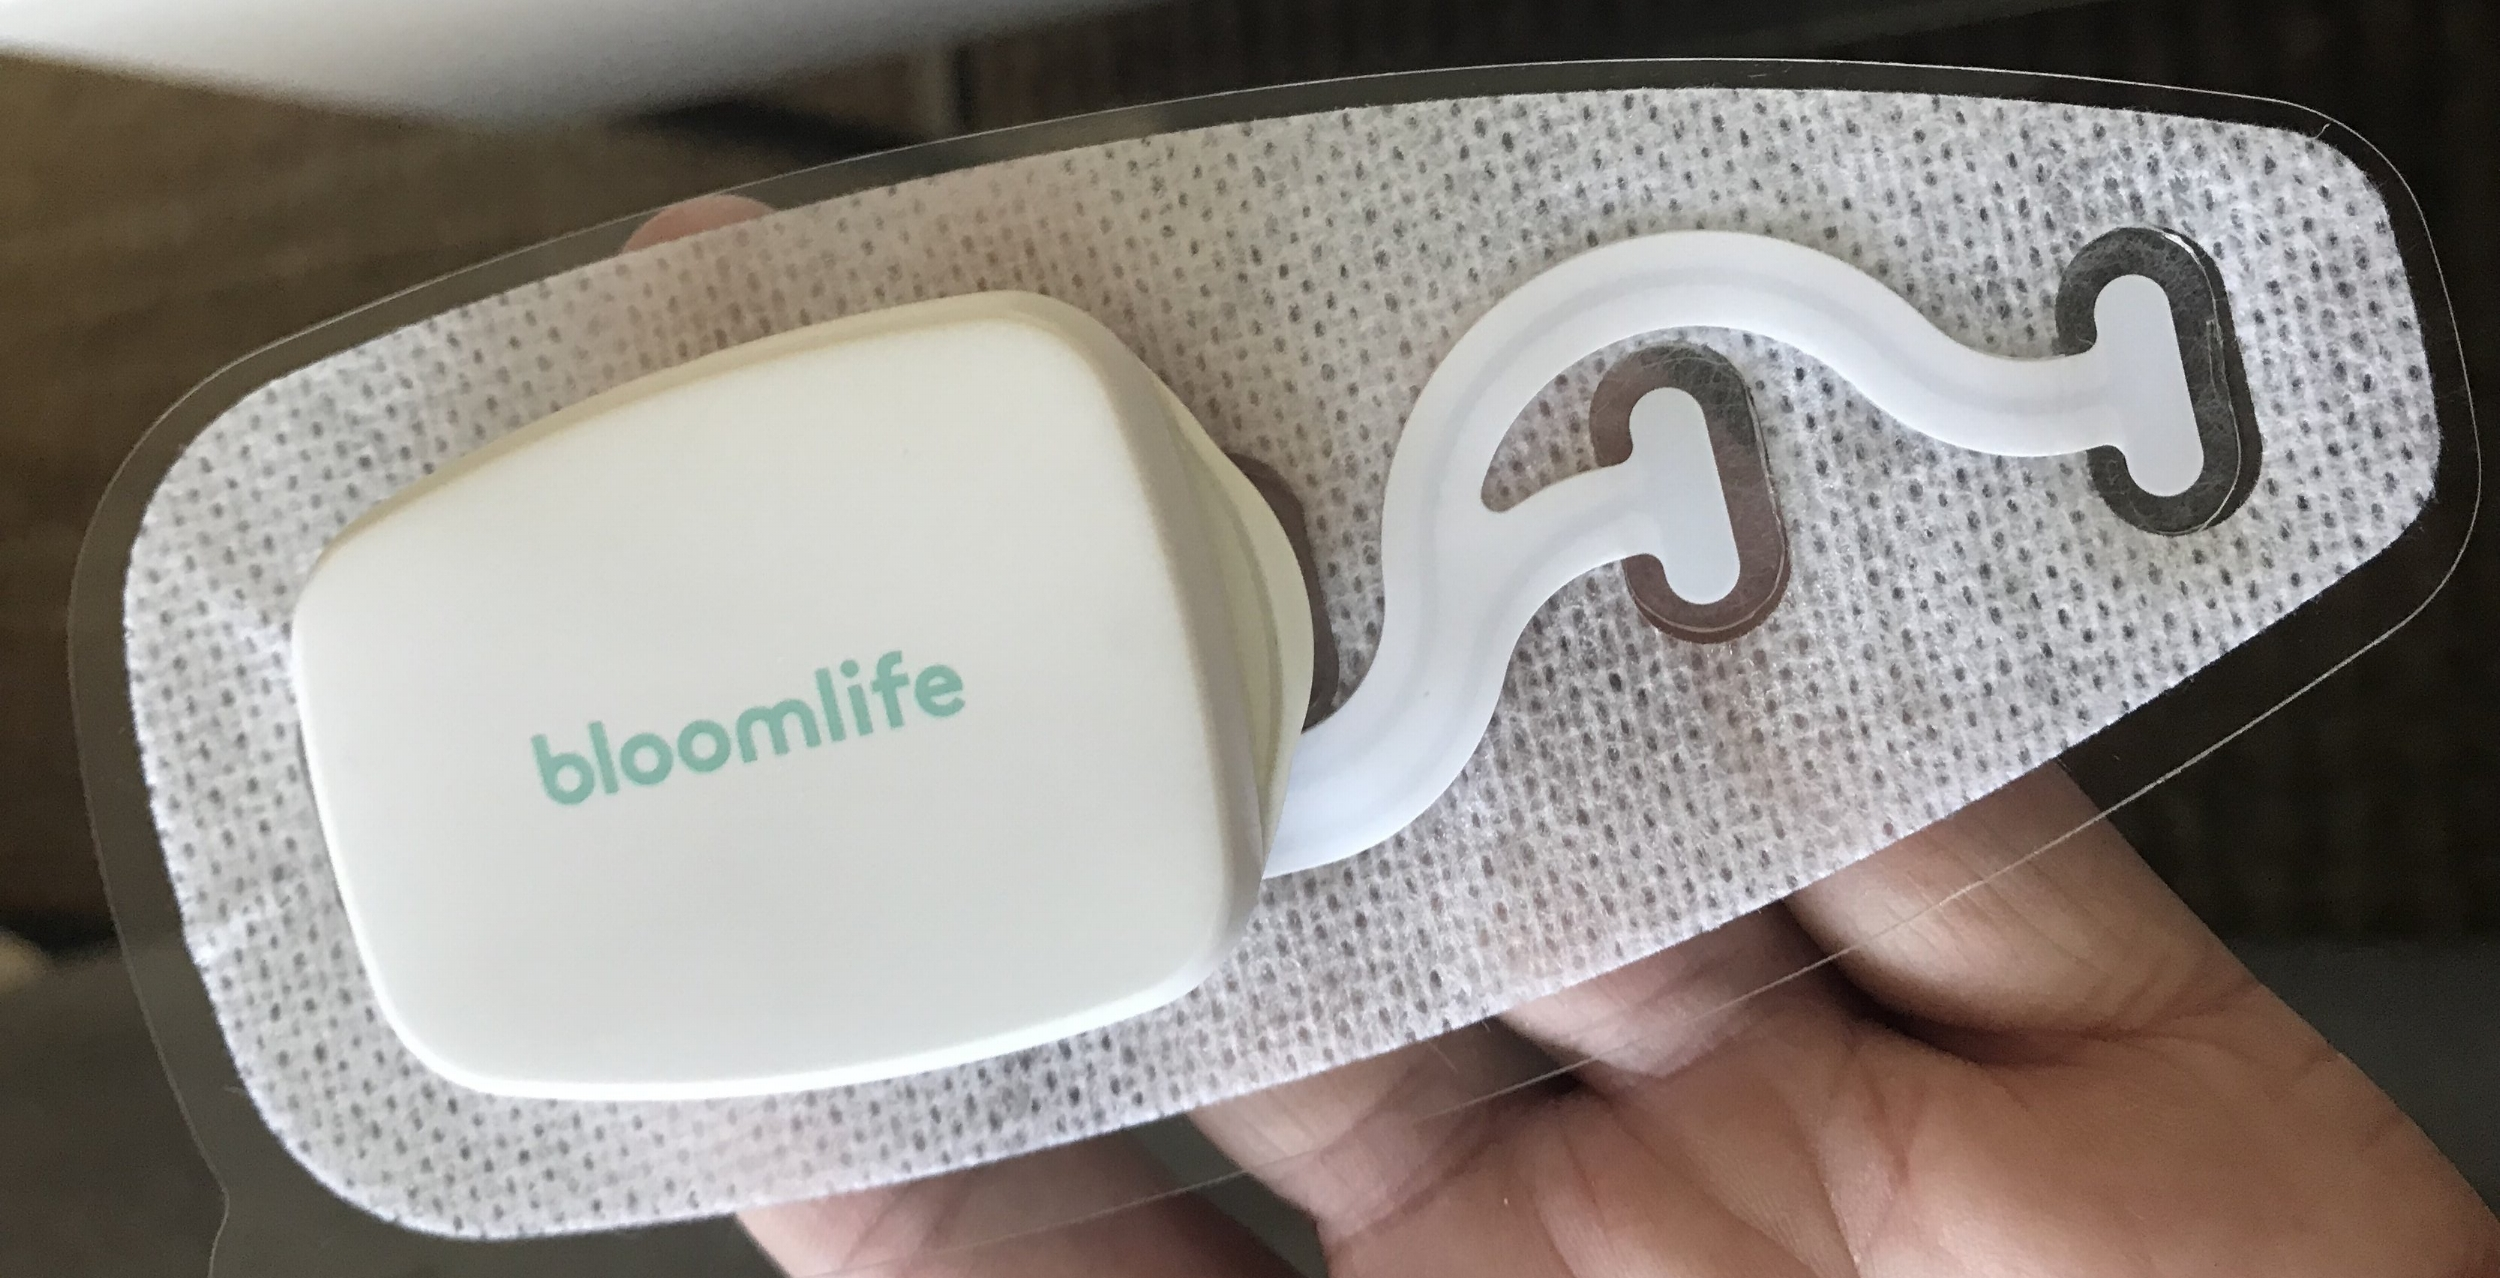 bloom life contraction monitor